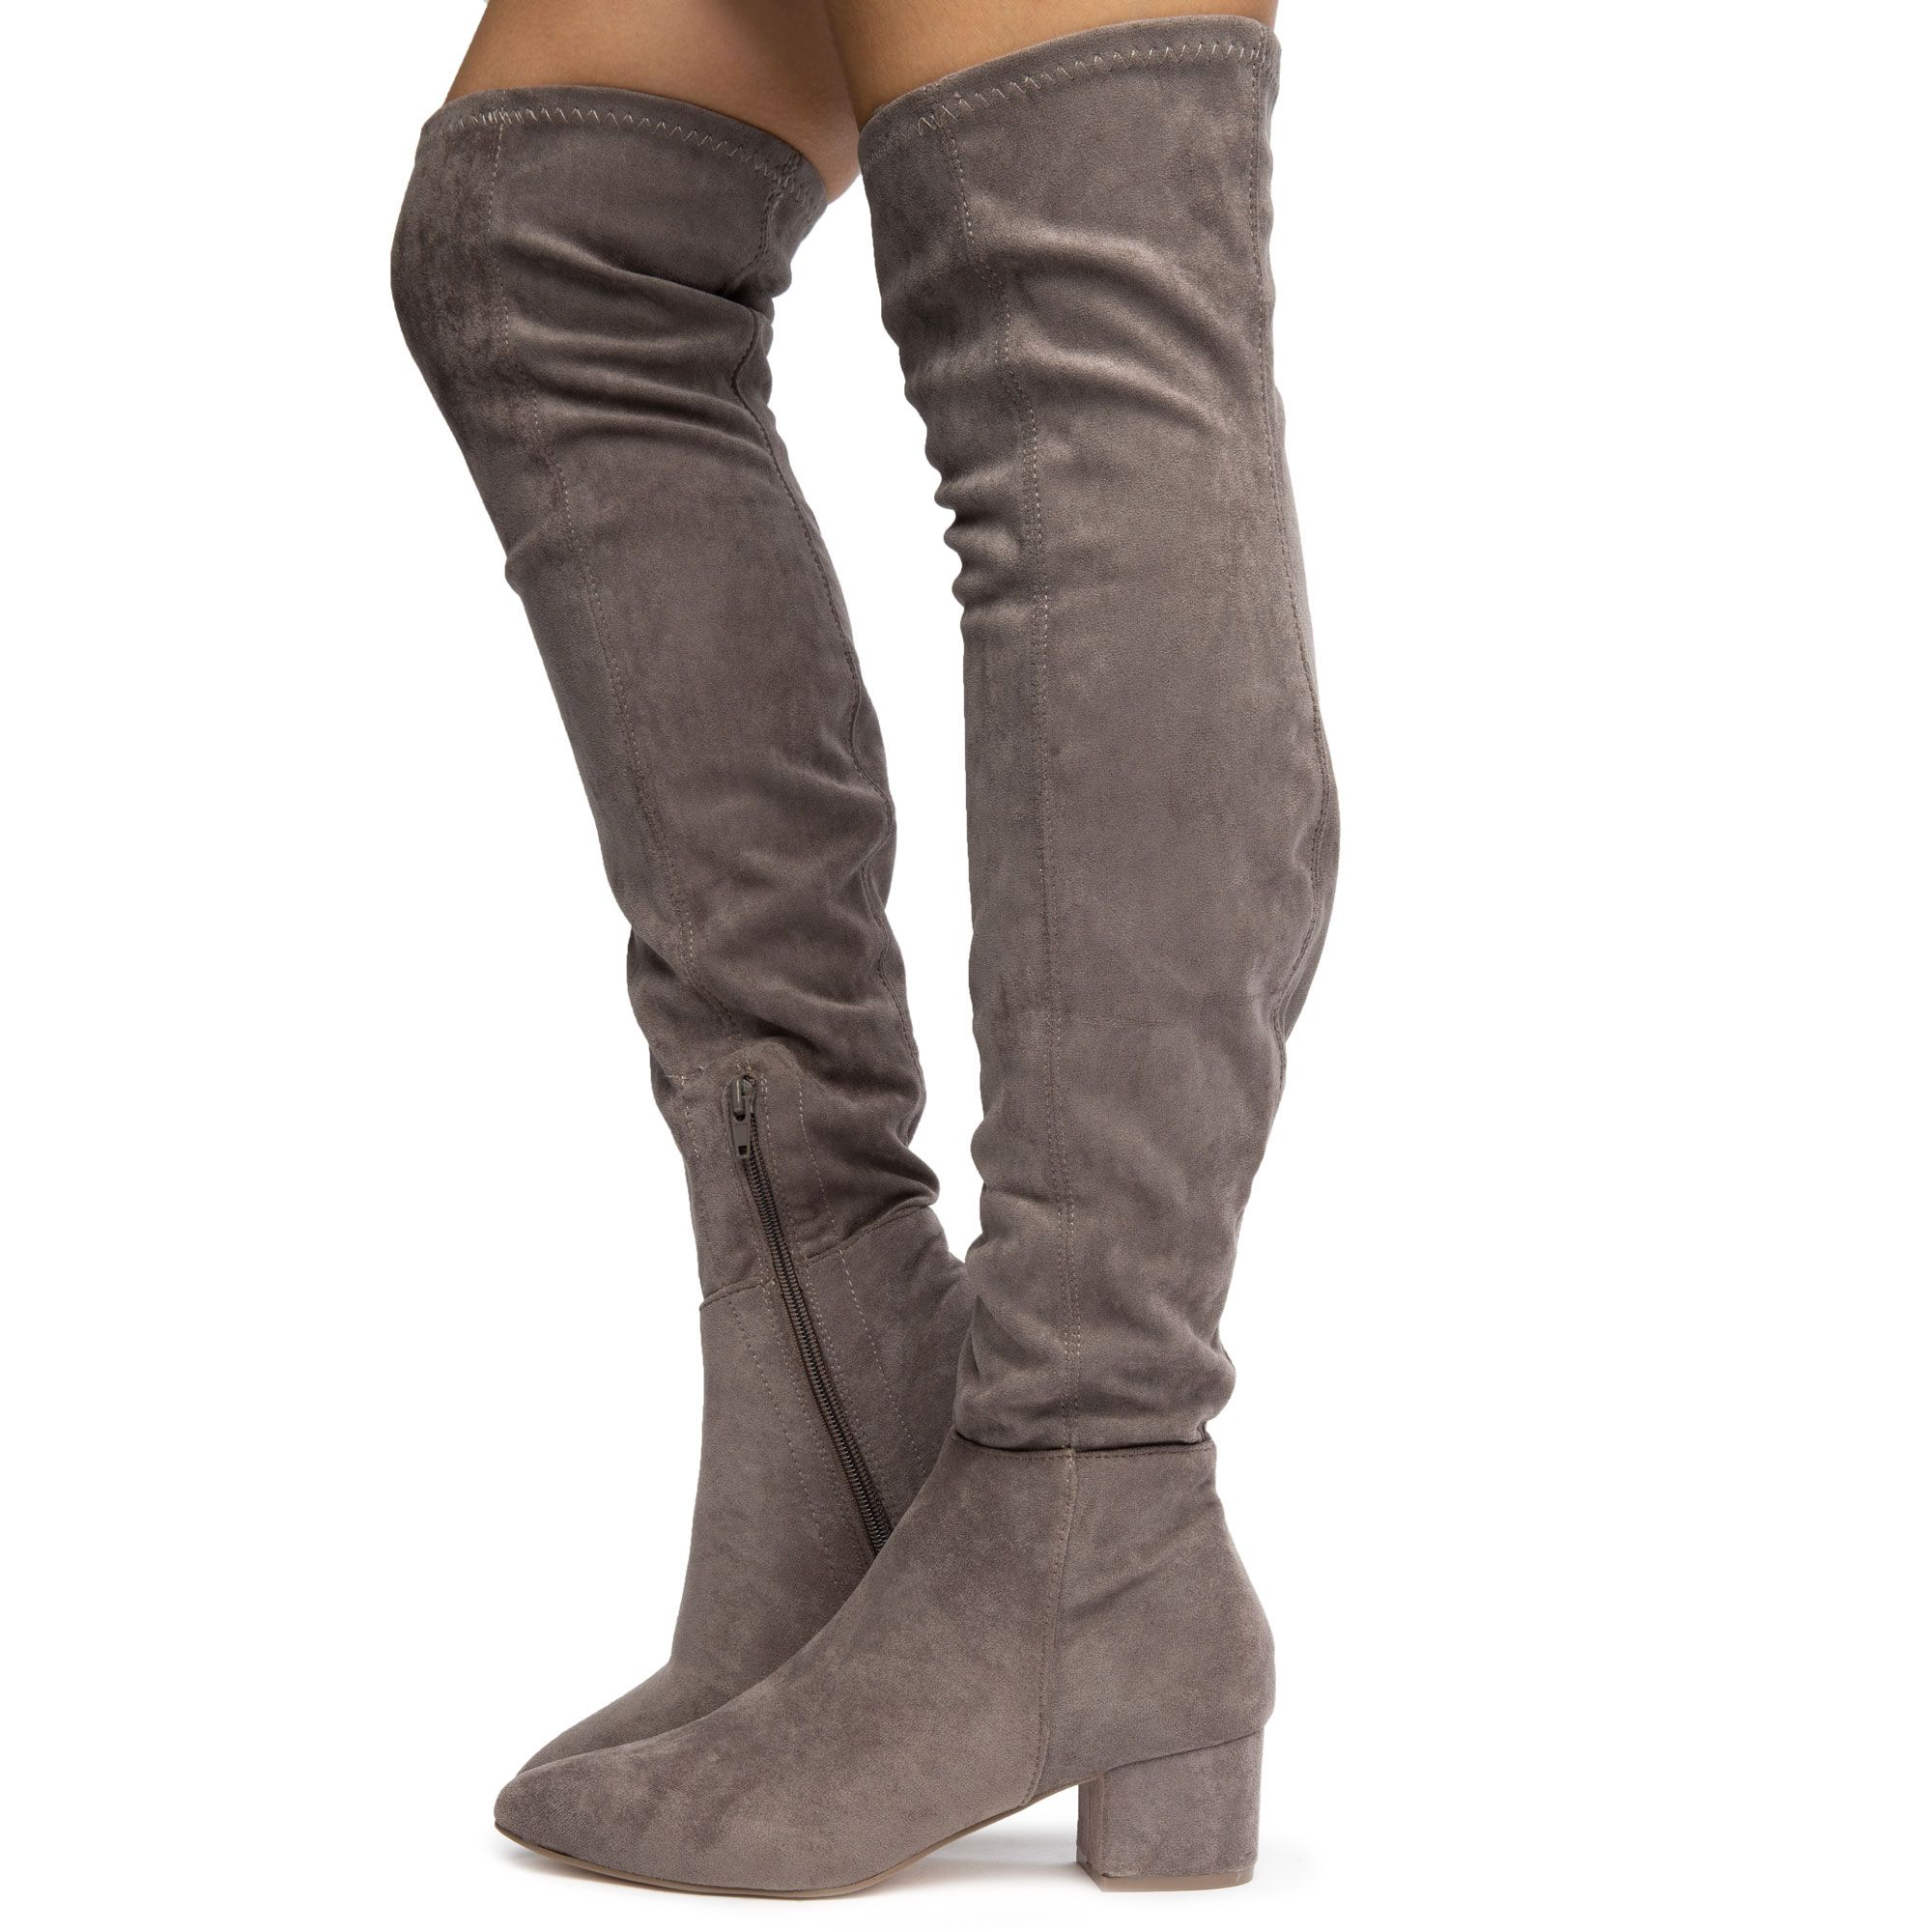 Wynter-1 Over the Knee Boots